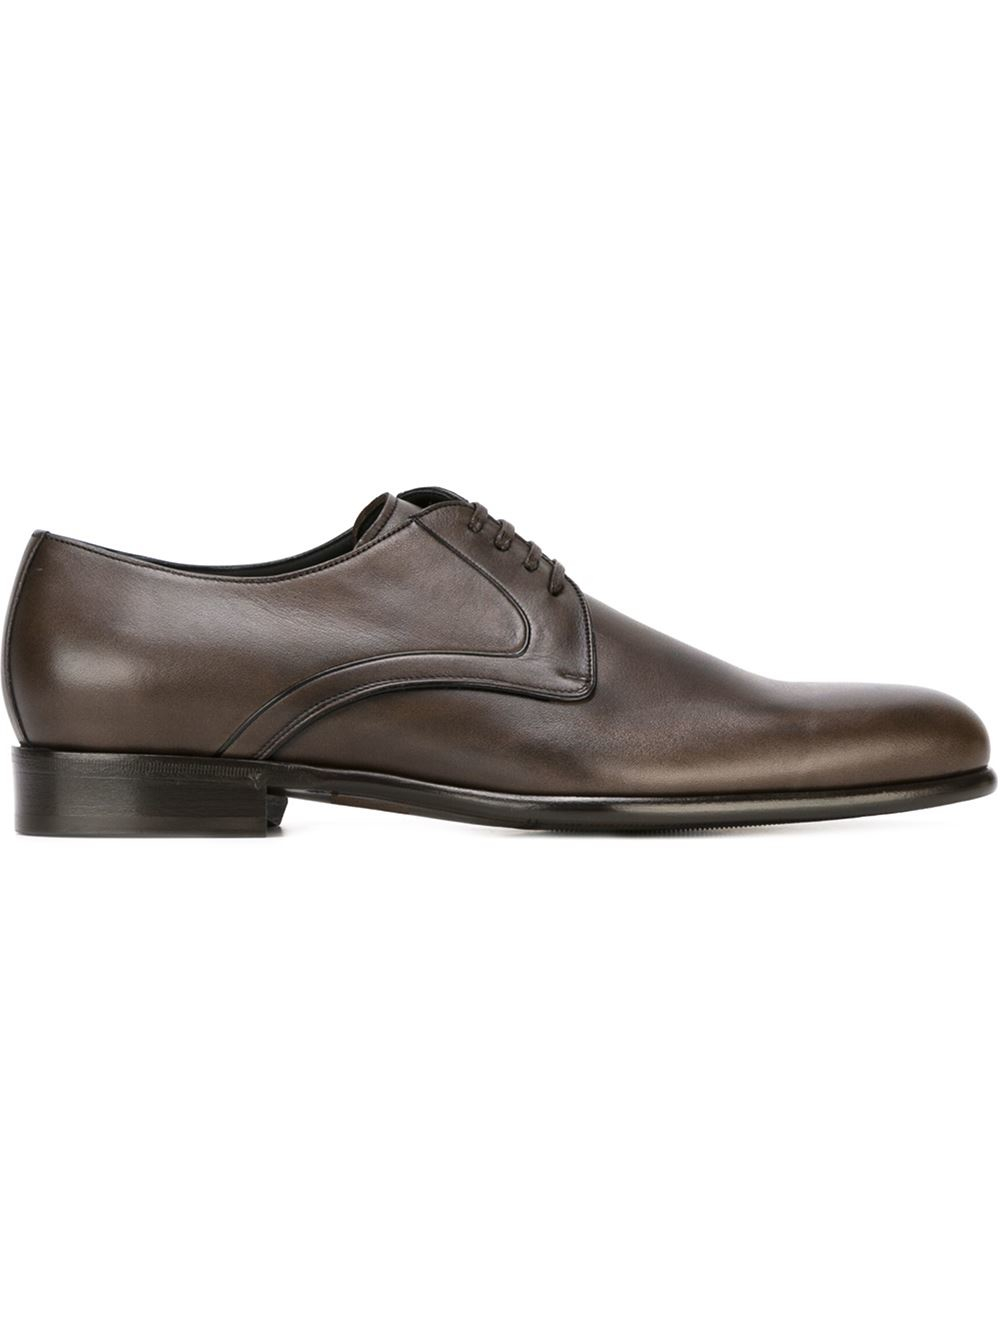 dolce gabbana derby shoes in brown for brown